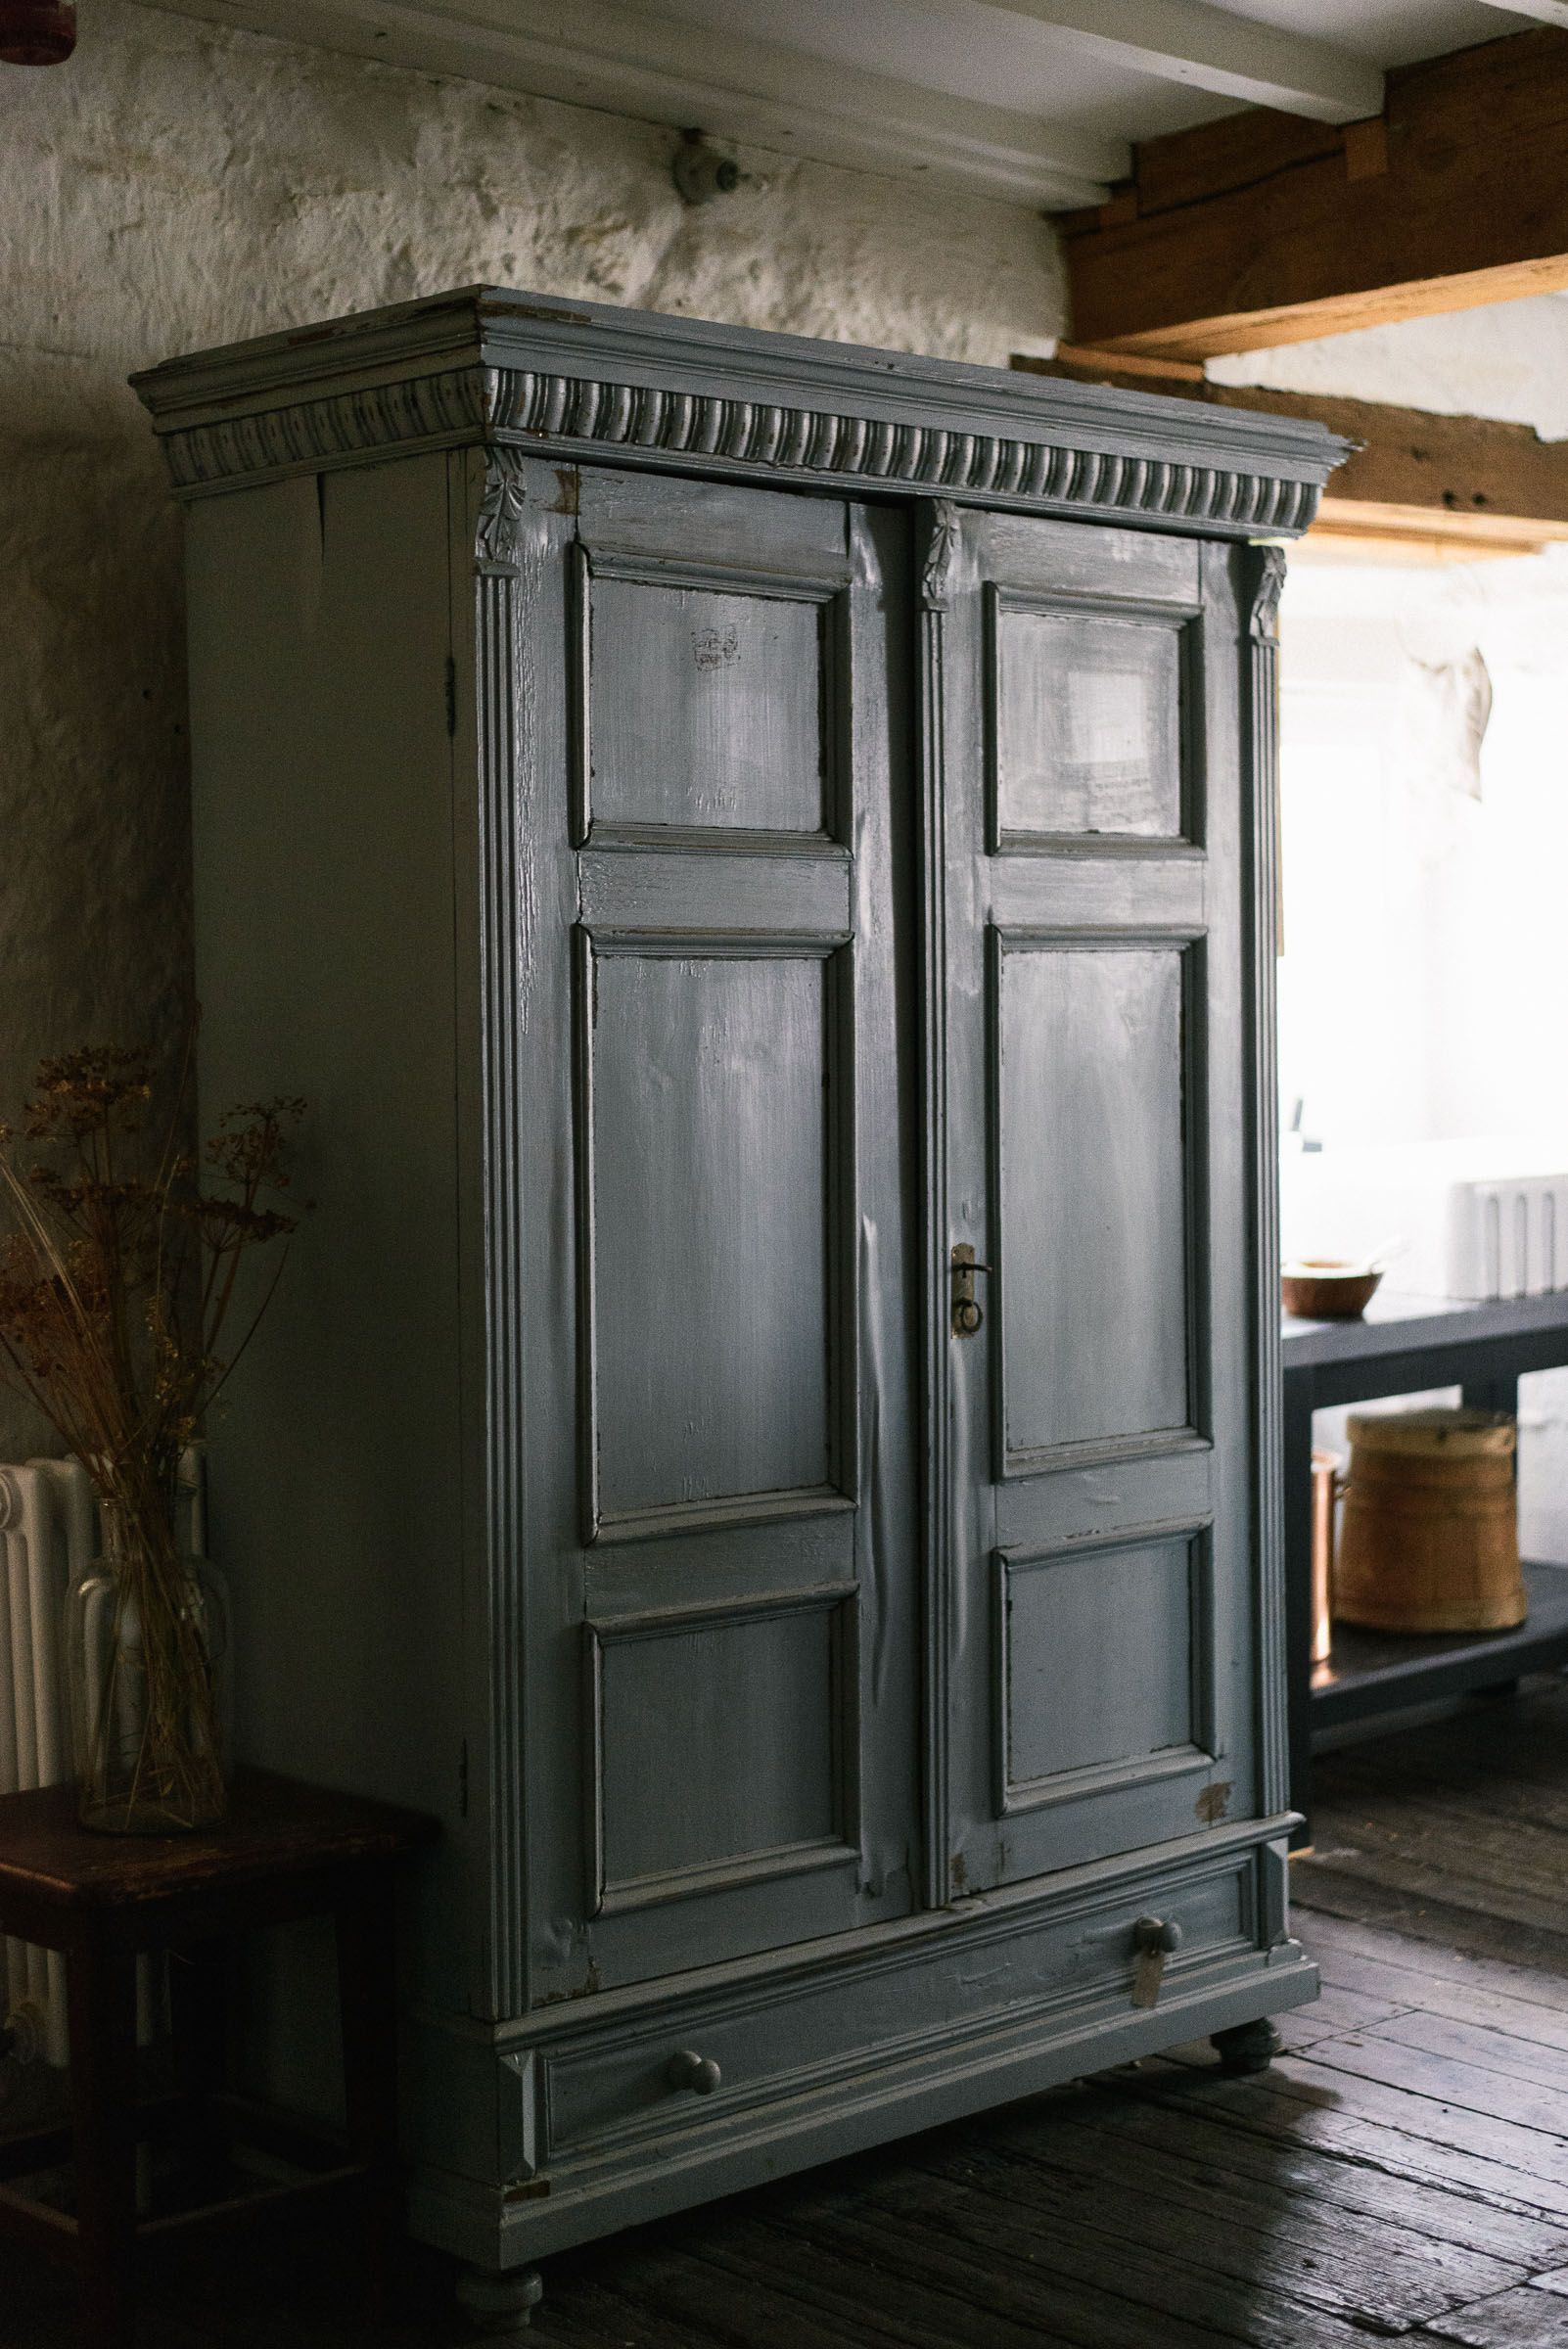 Amazing antique wardrobes available from devolus cotes mill